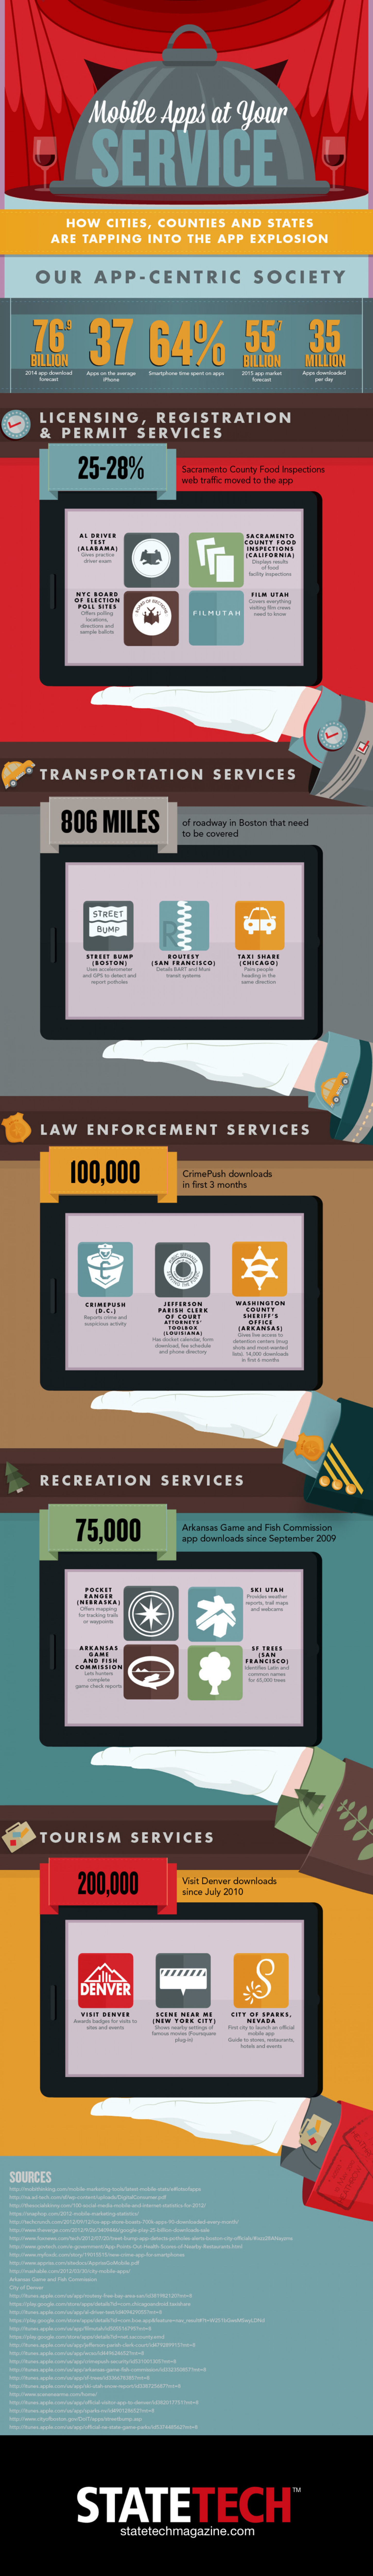 How Mobile Devices are Feeding Local Government's App-etite for Technology  Infographic